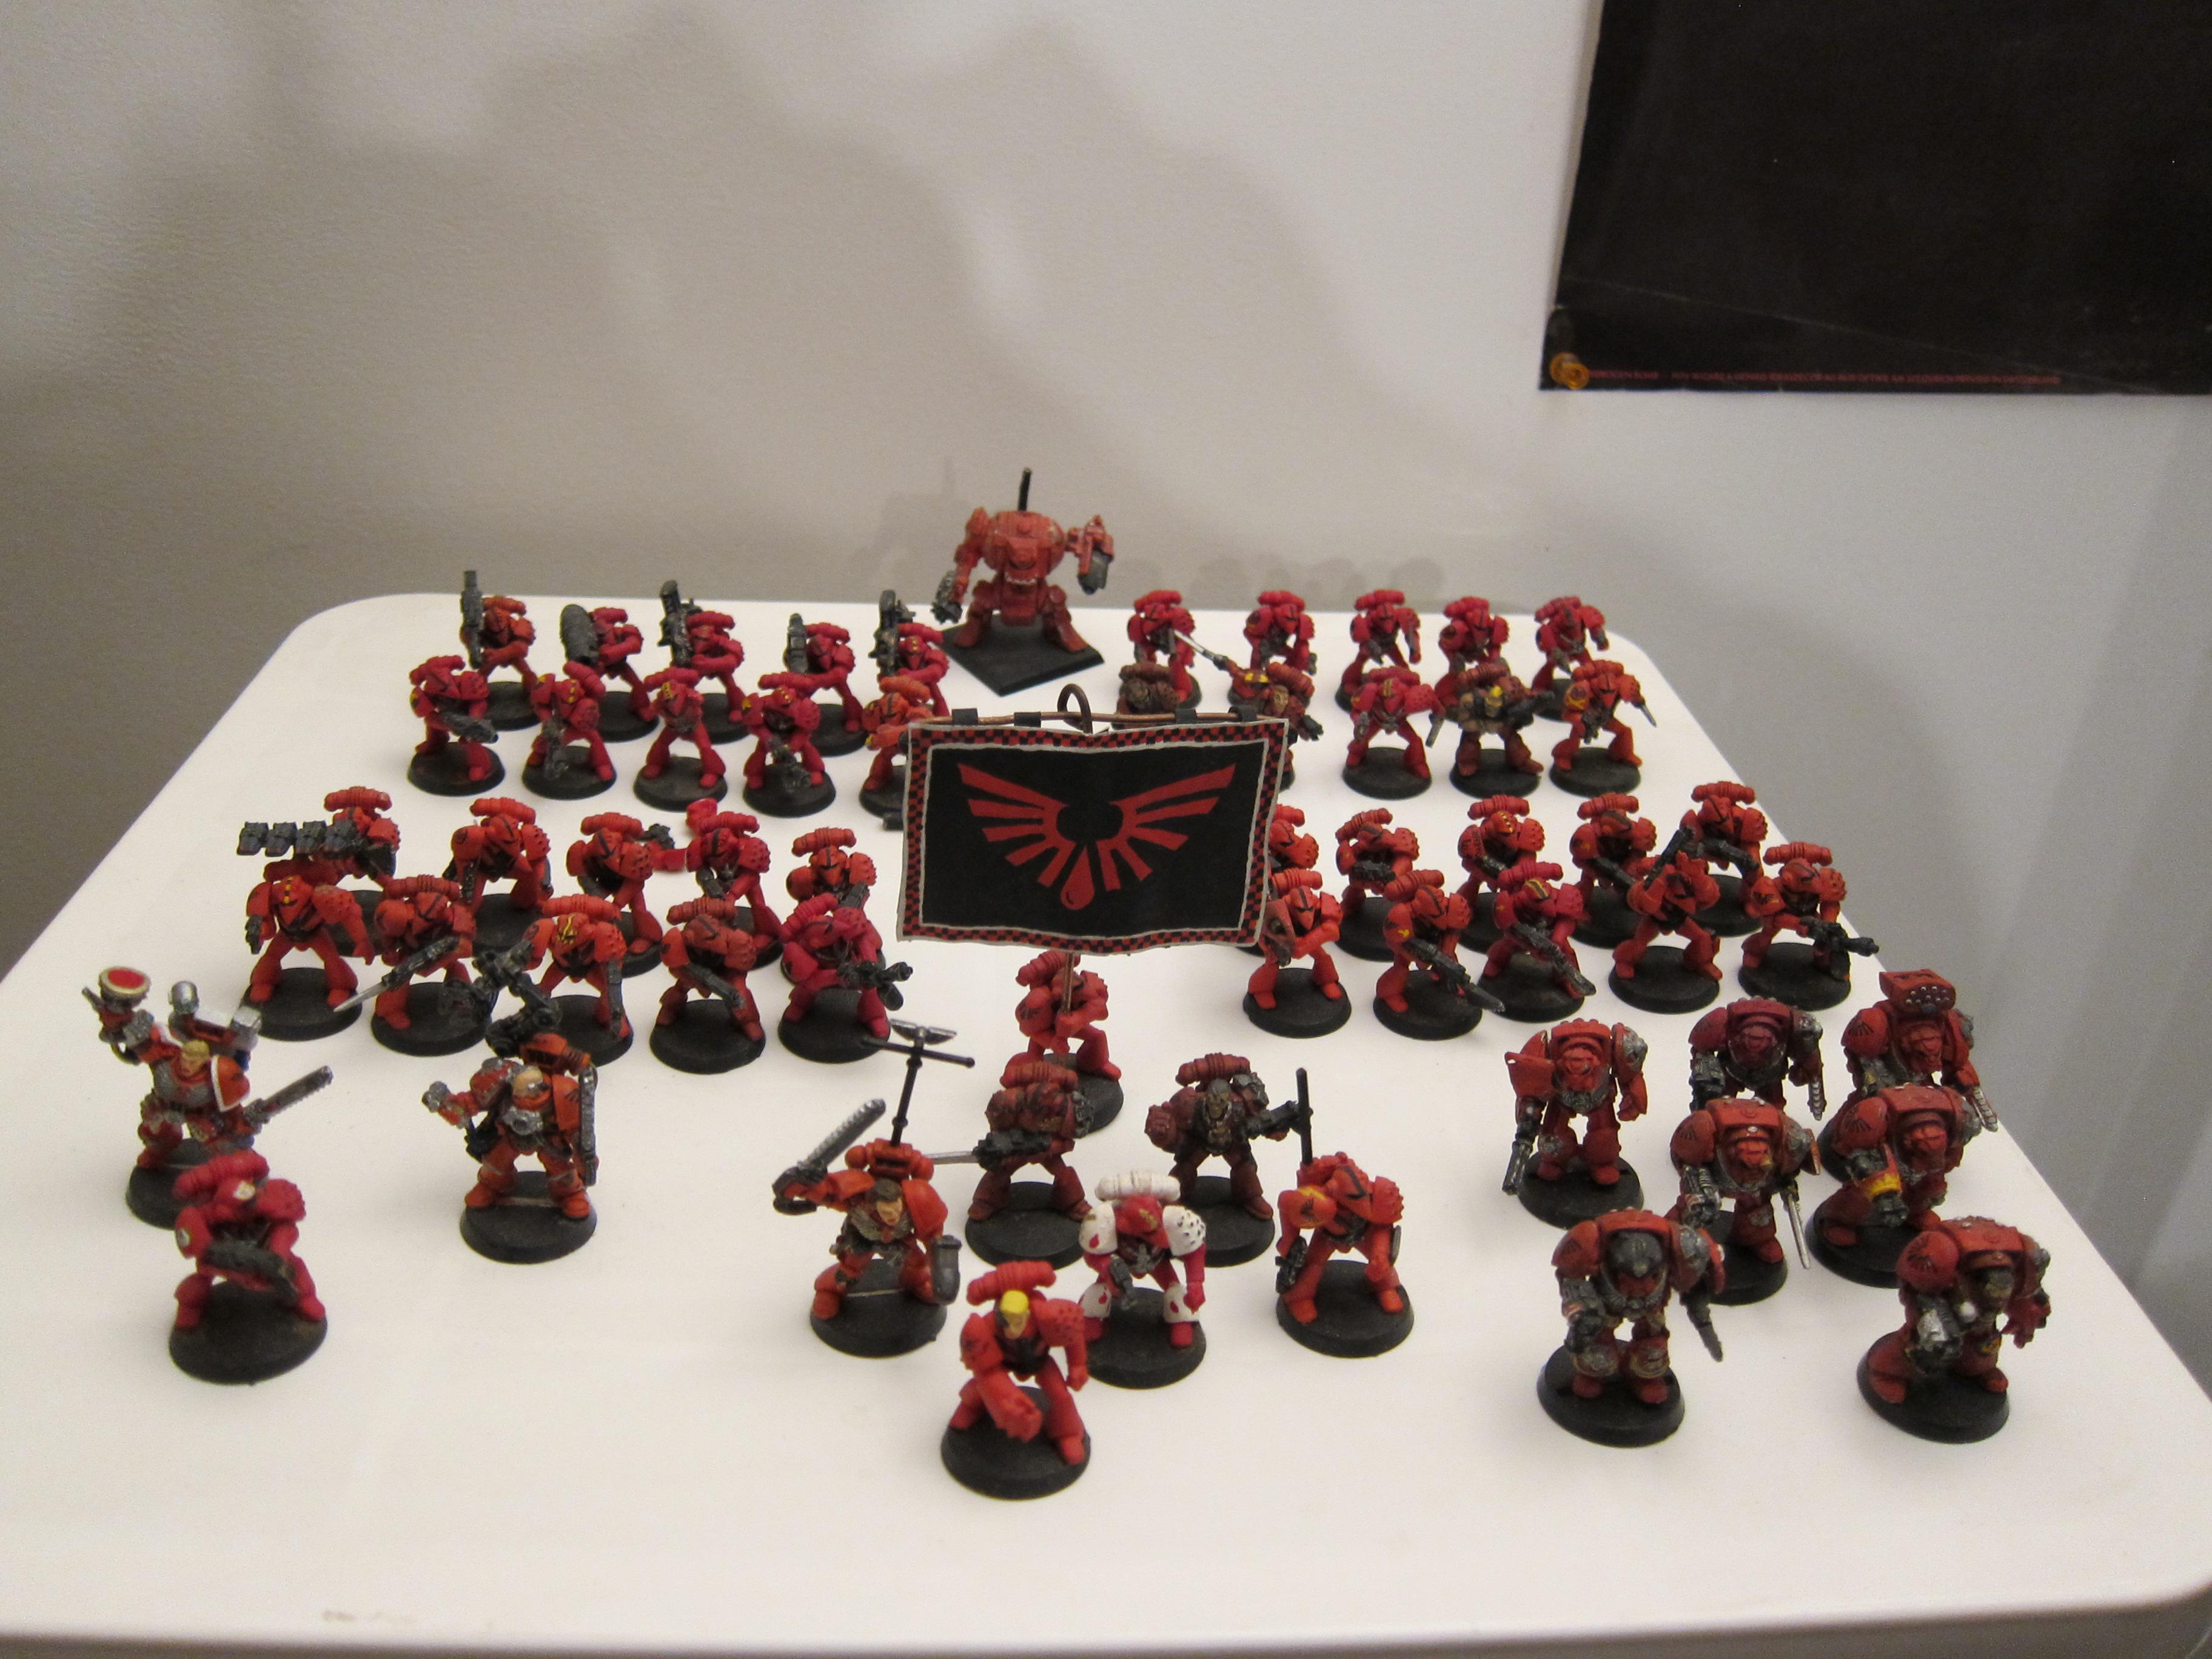 Beakies, Blood Angels, Out Of Production, Rogue Trader, Rt, Space Marines, Warhammer 40,000